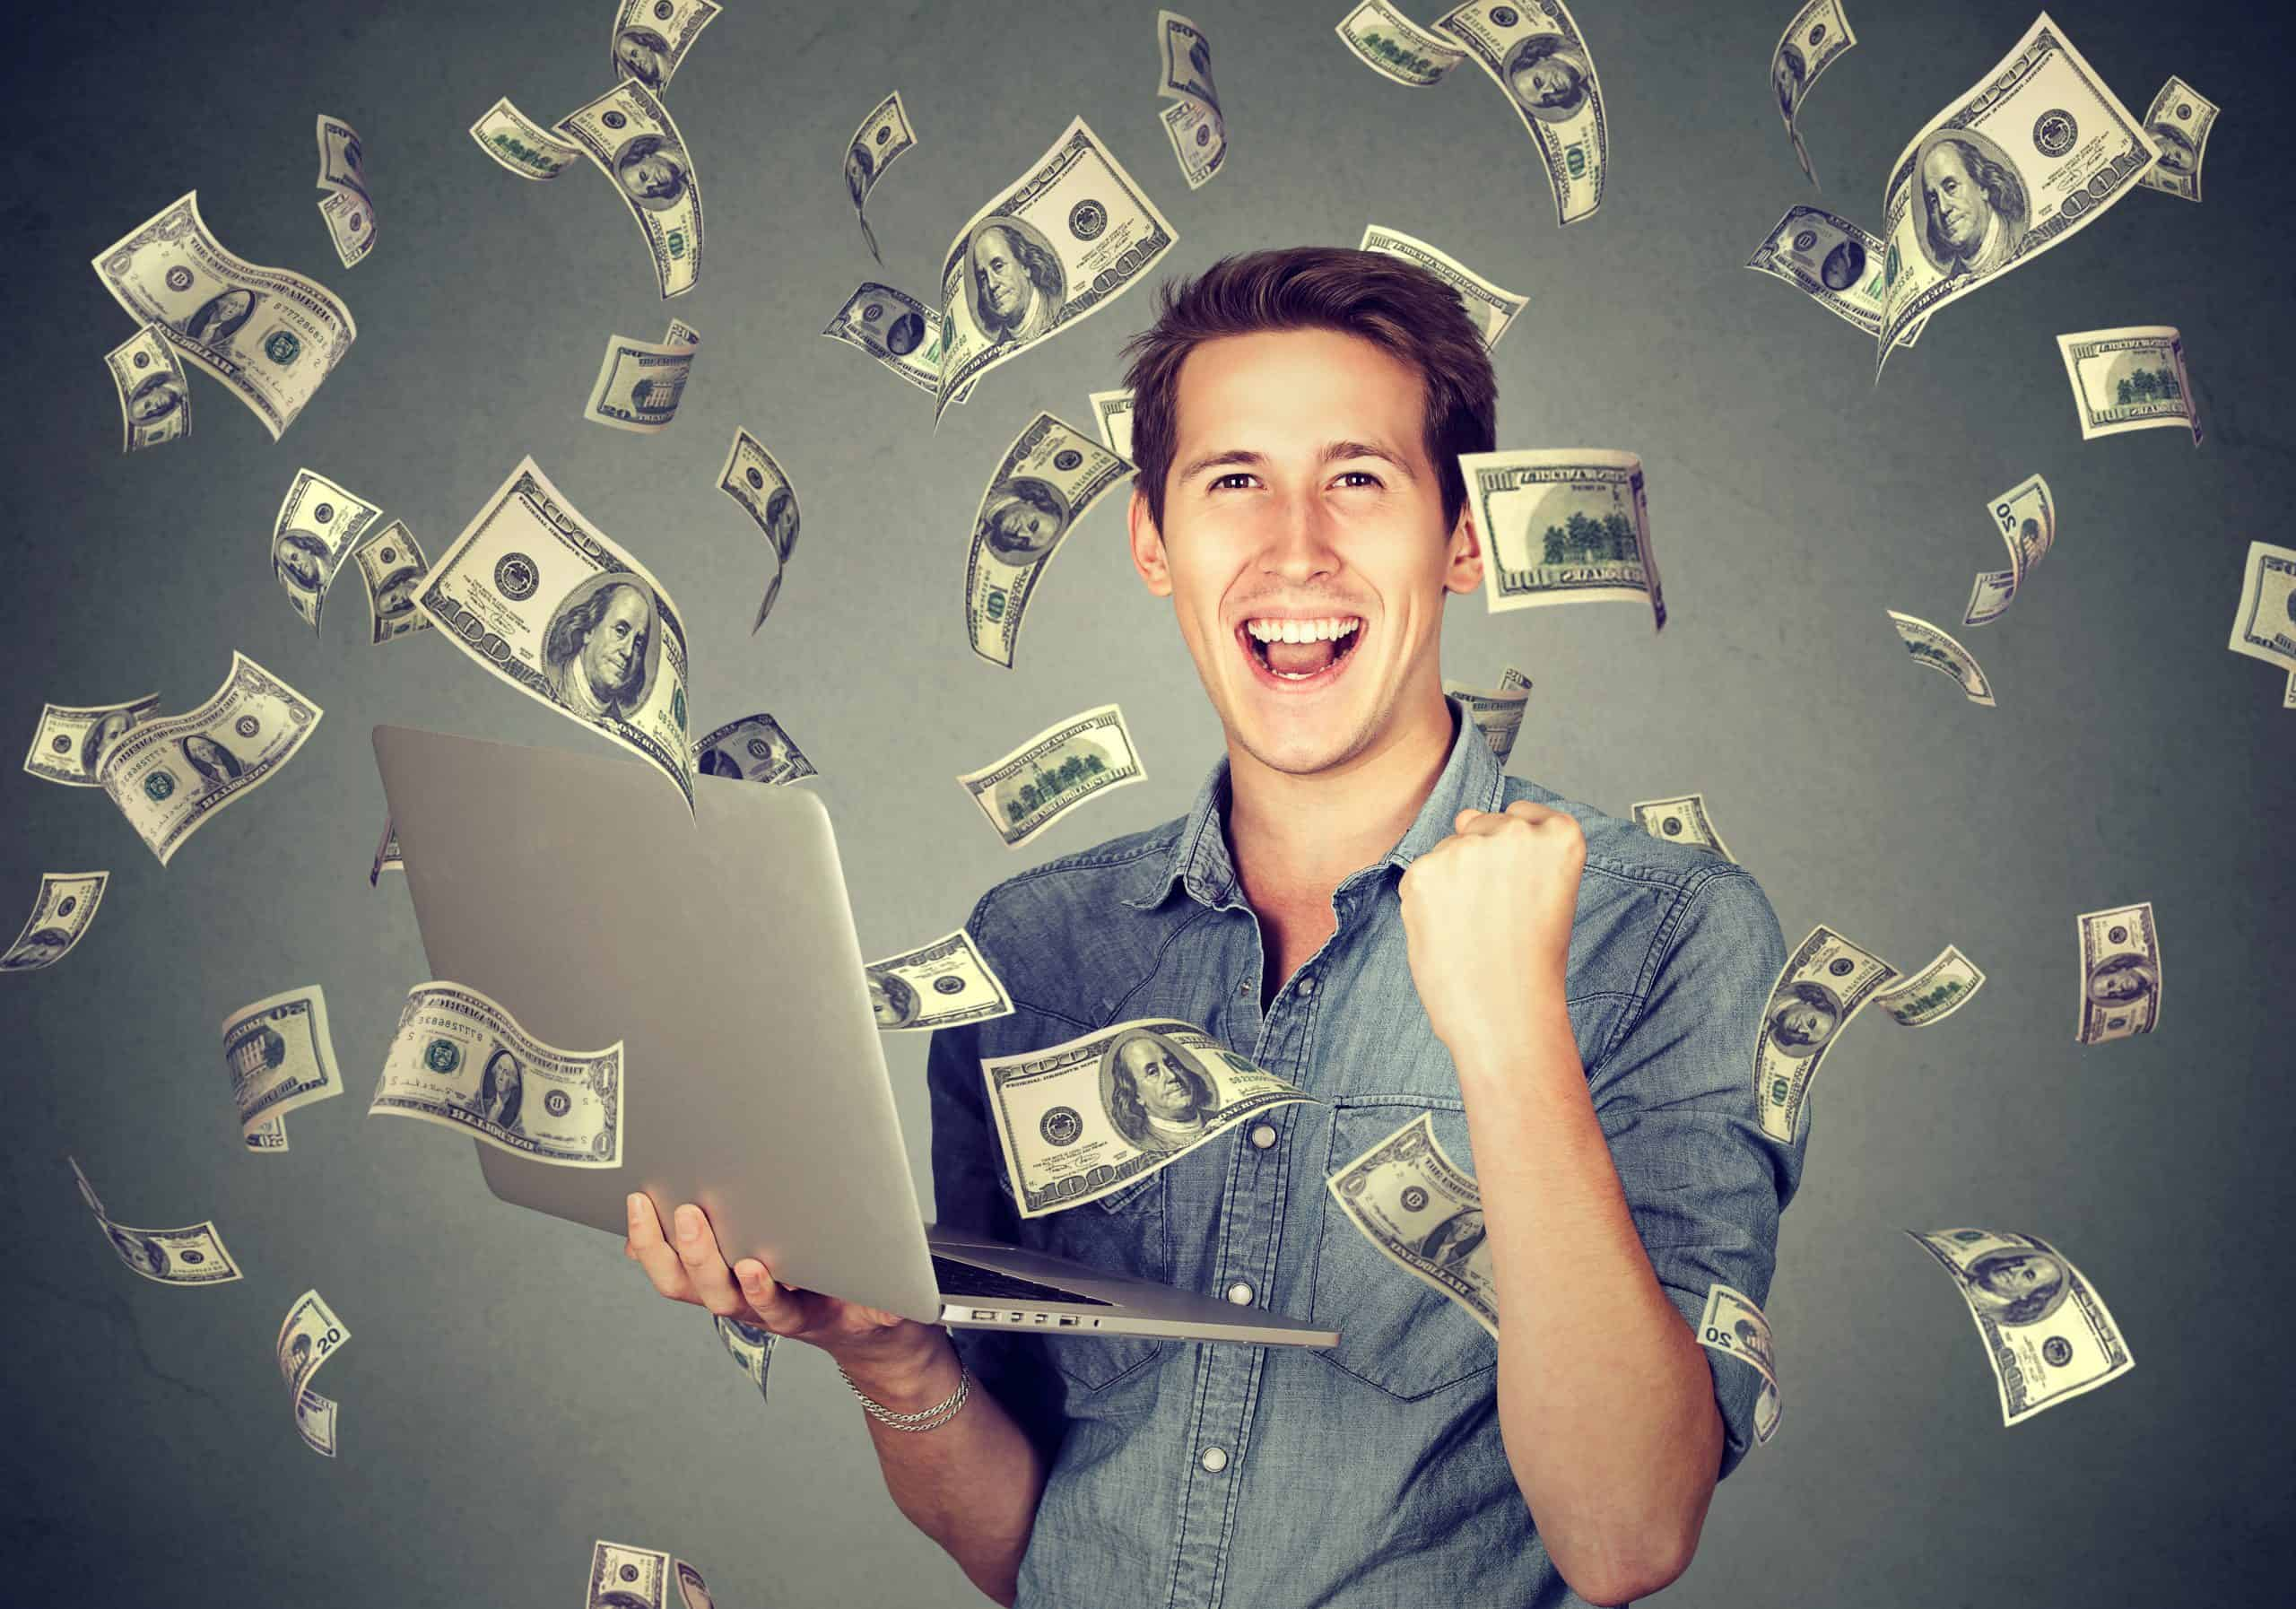 10 Tips To Master How to Make Money Online For Free